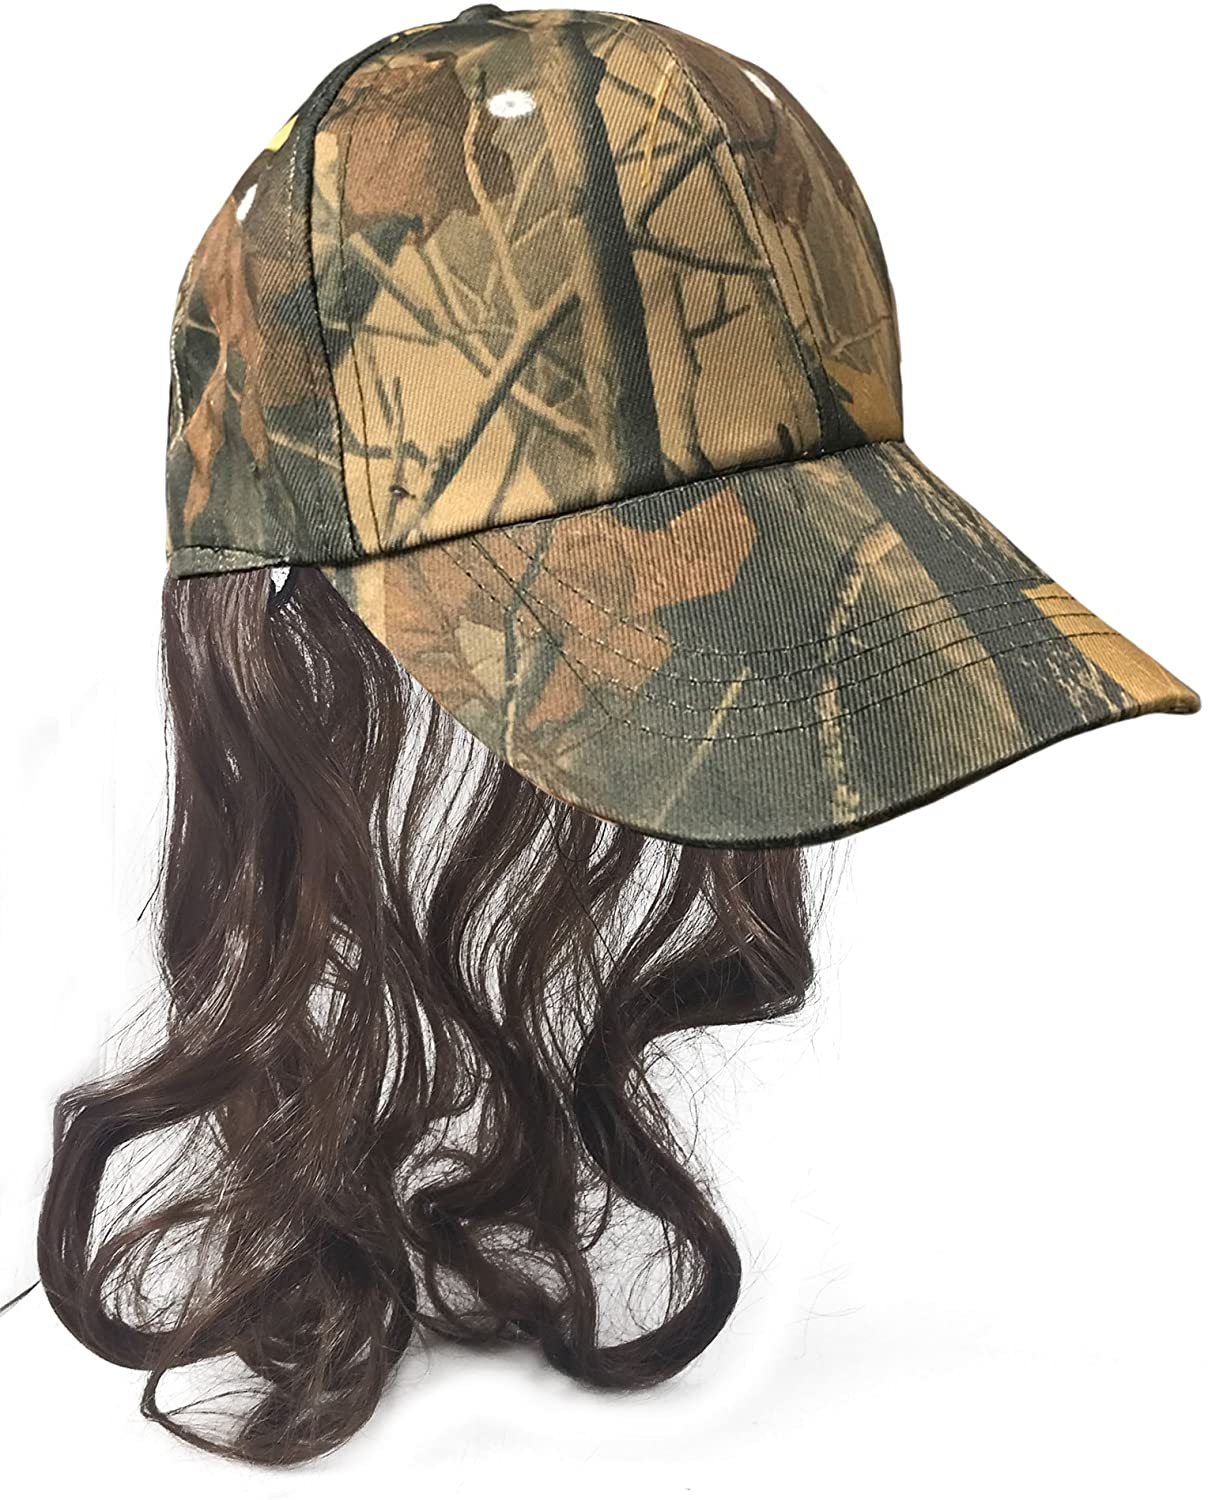 Amazon.com: Camouflage Billy Ray Hat with Brown Mullet Hair! Bed ...